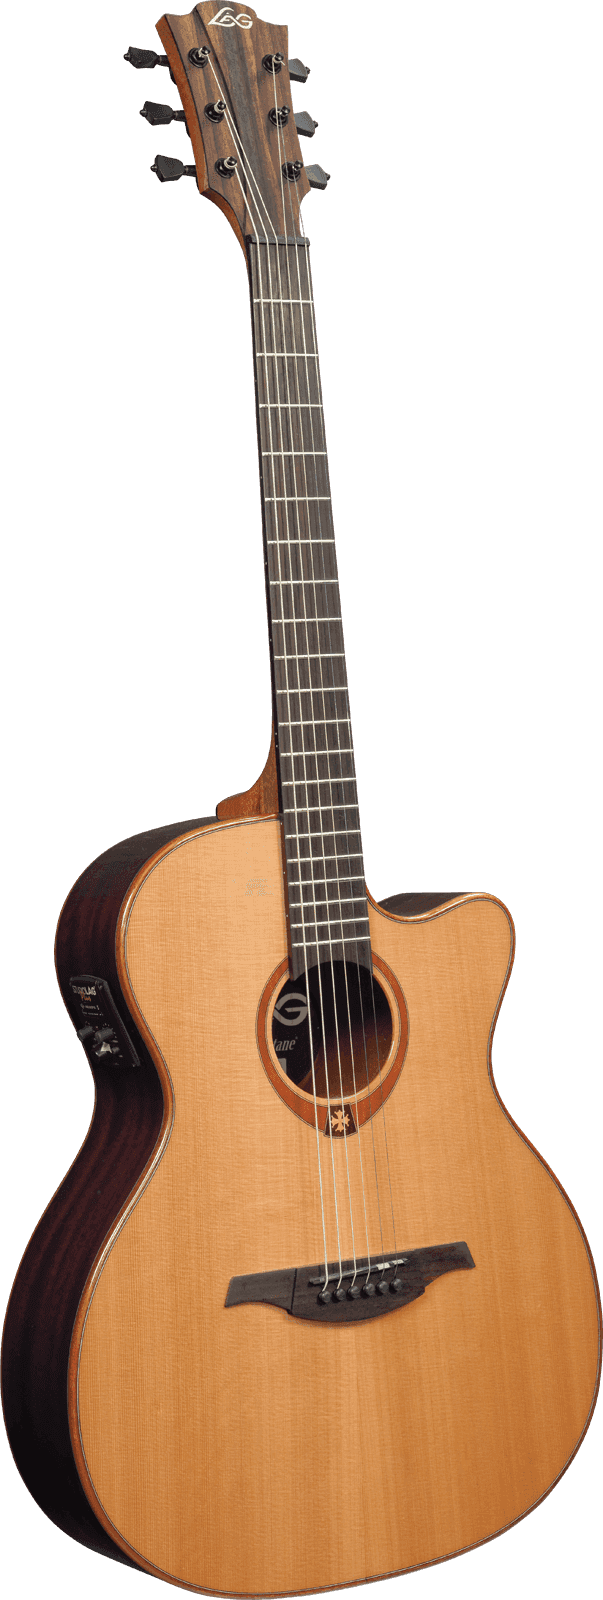 lag tramontane t100ace stage auditorium cutaway acoustic electric natural guitar ebay. Black Bedroom Furniture Sets. Home Design Ideas